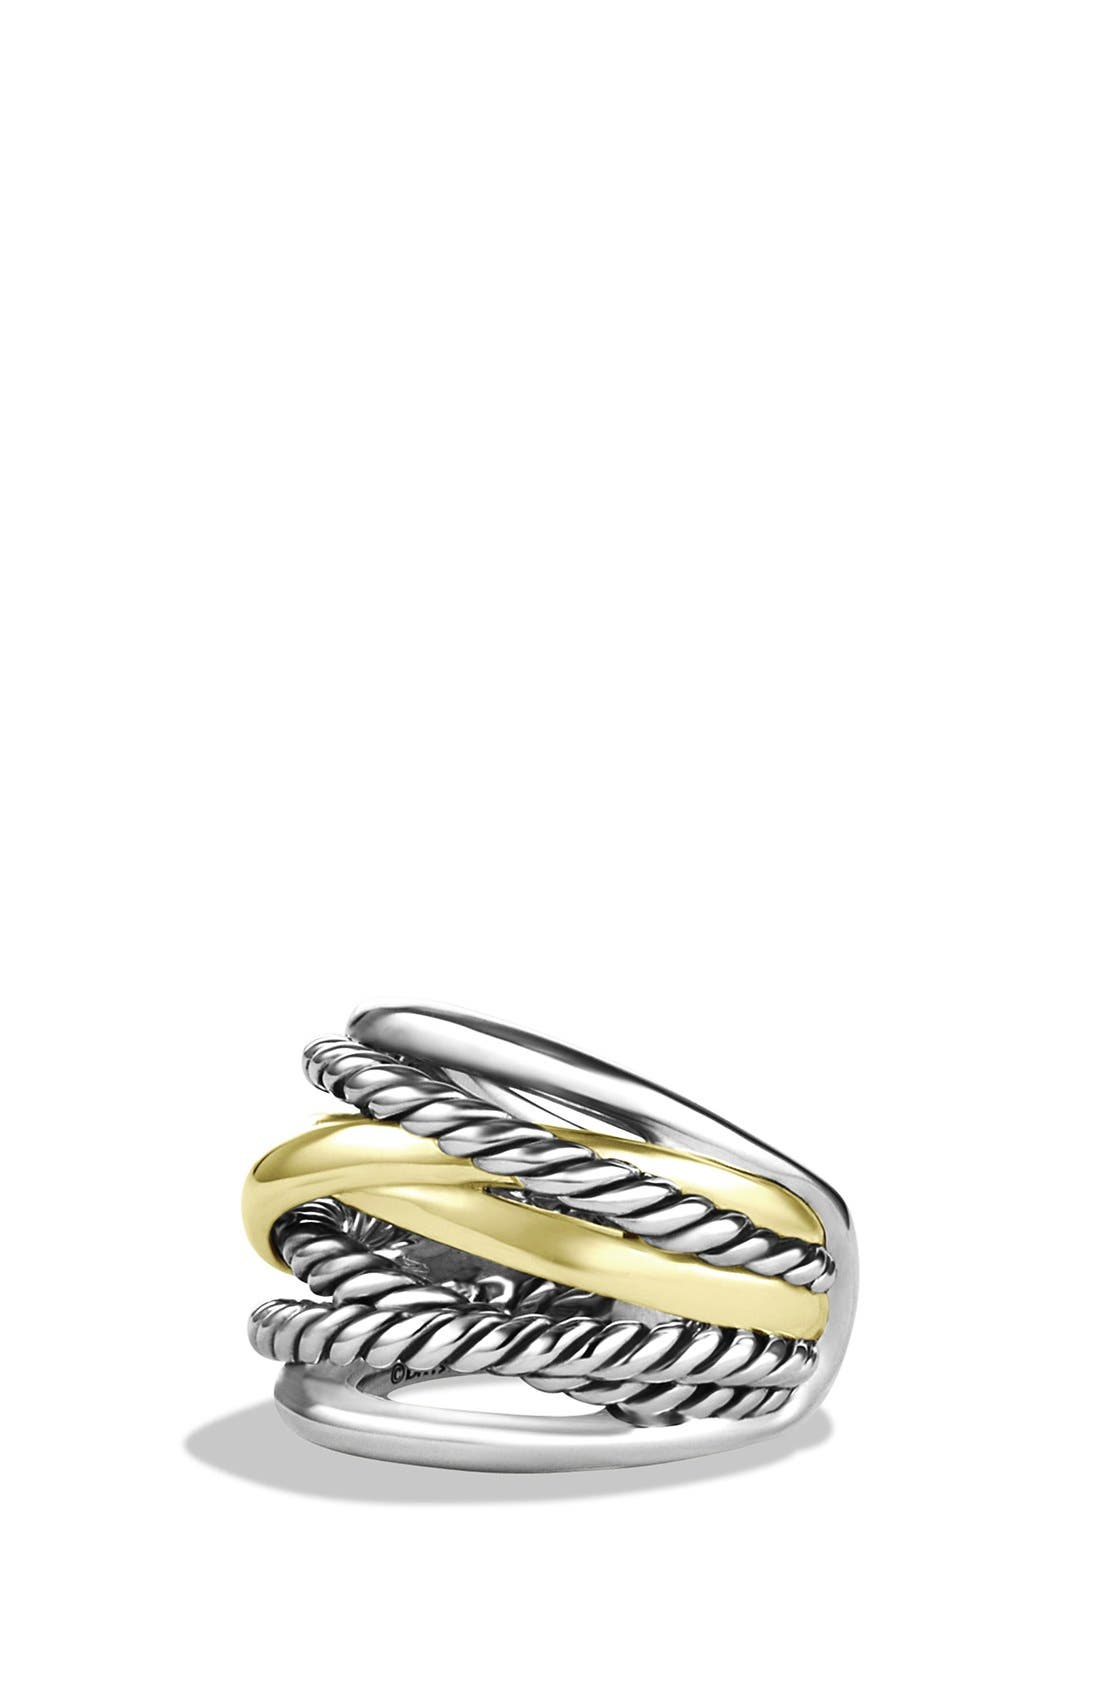 David Yurman 'Crossover' Wide Ring with Gold